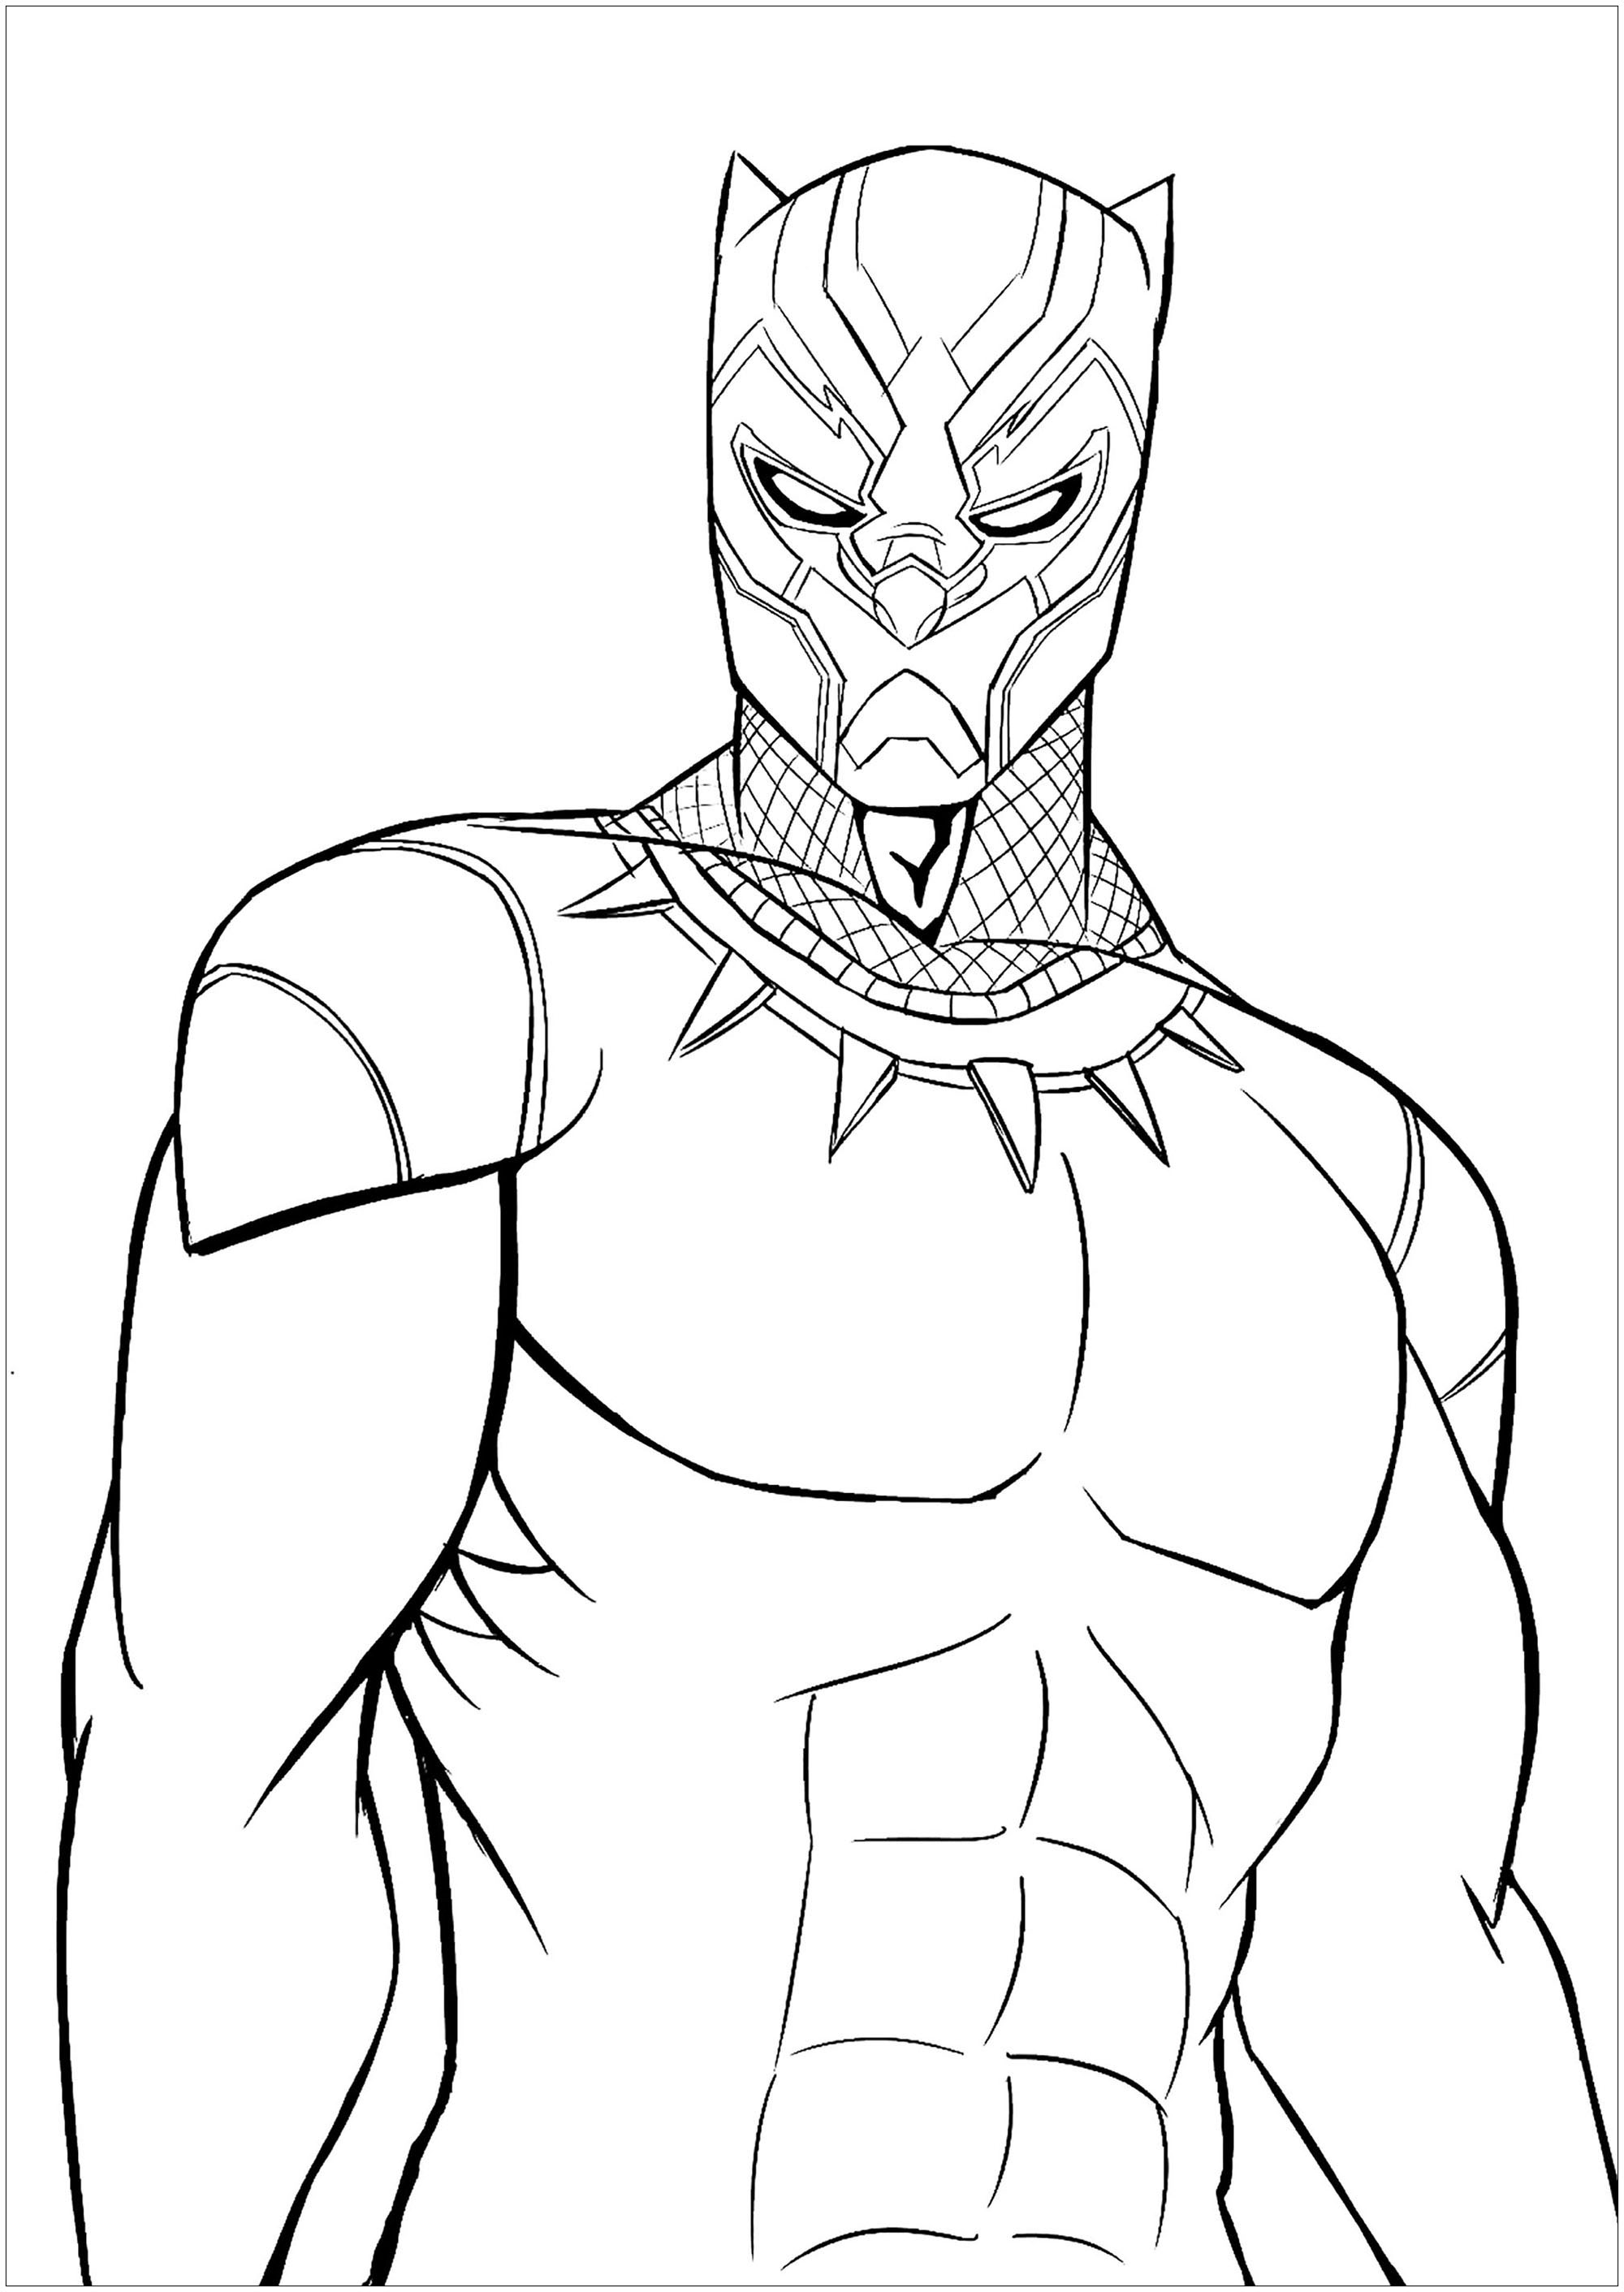 Coloriage De Black Panther.Black Panther 2 Coloriage Black Panther Coloriages Pour